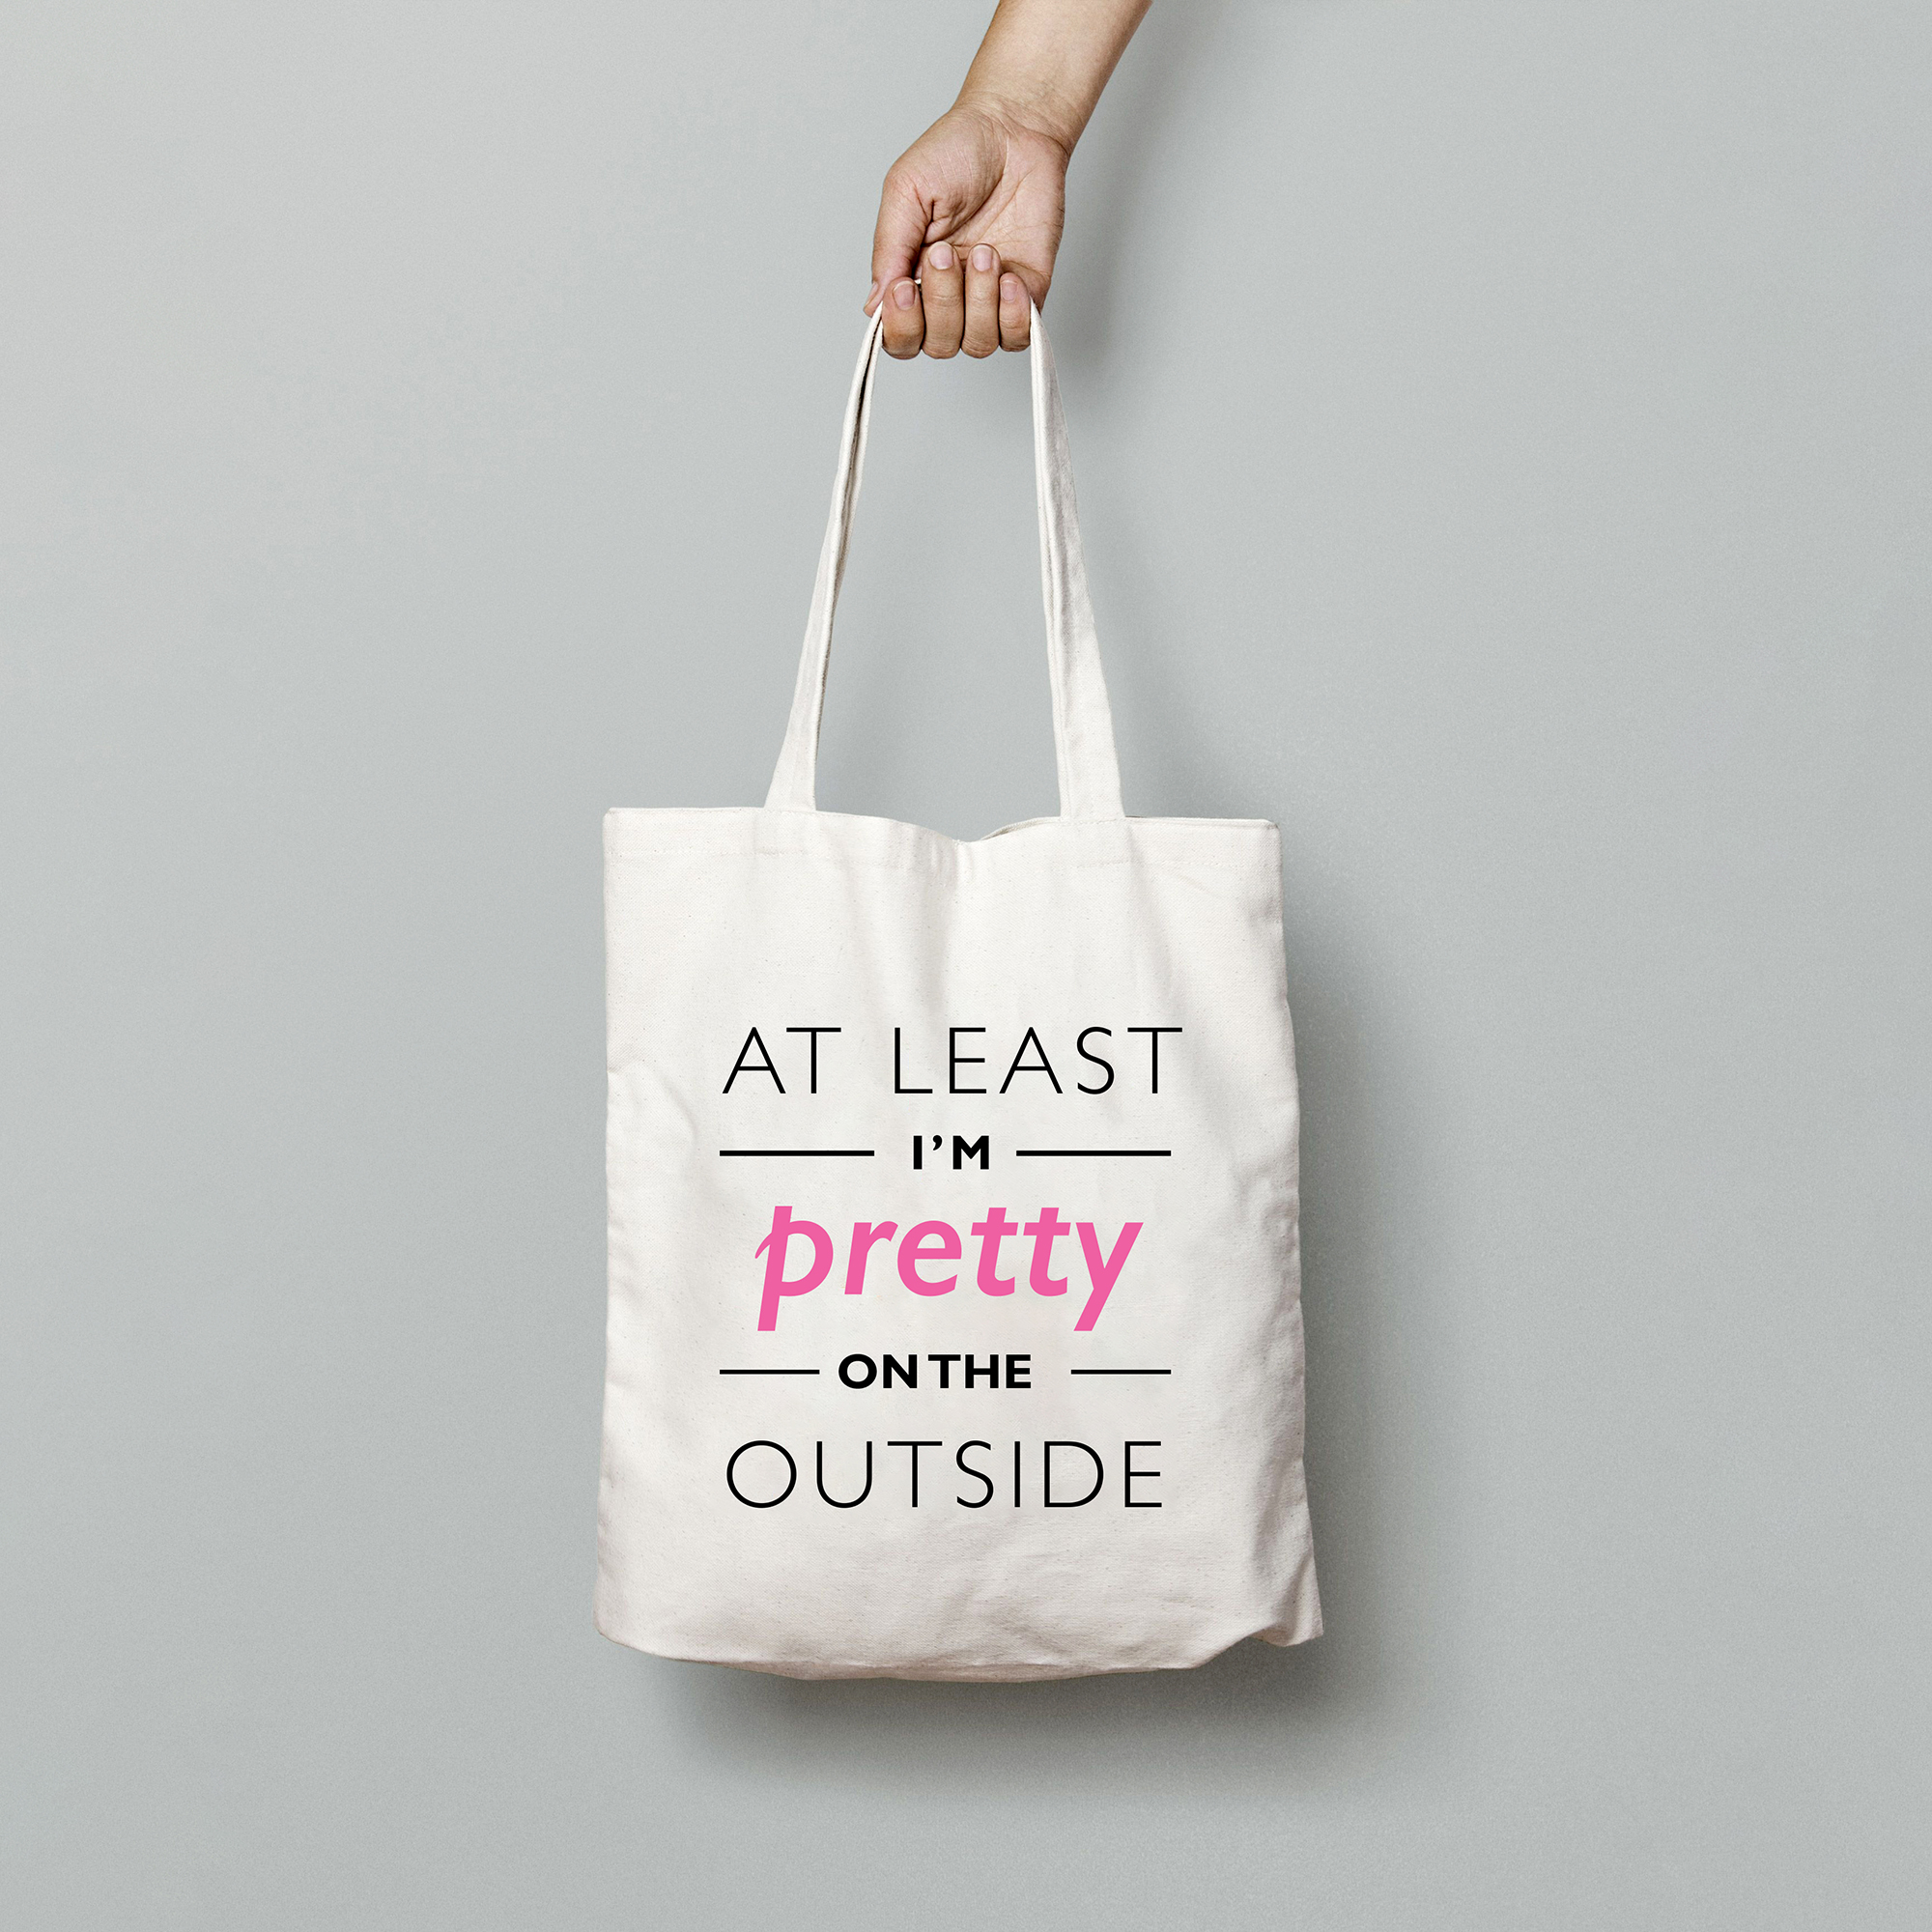 bb20ac9e9ba3 At least i m pretty on the outside - Tote bag